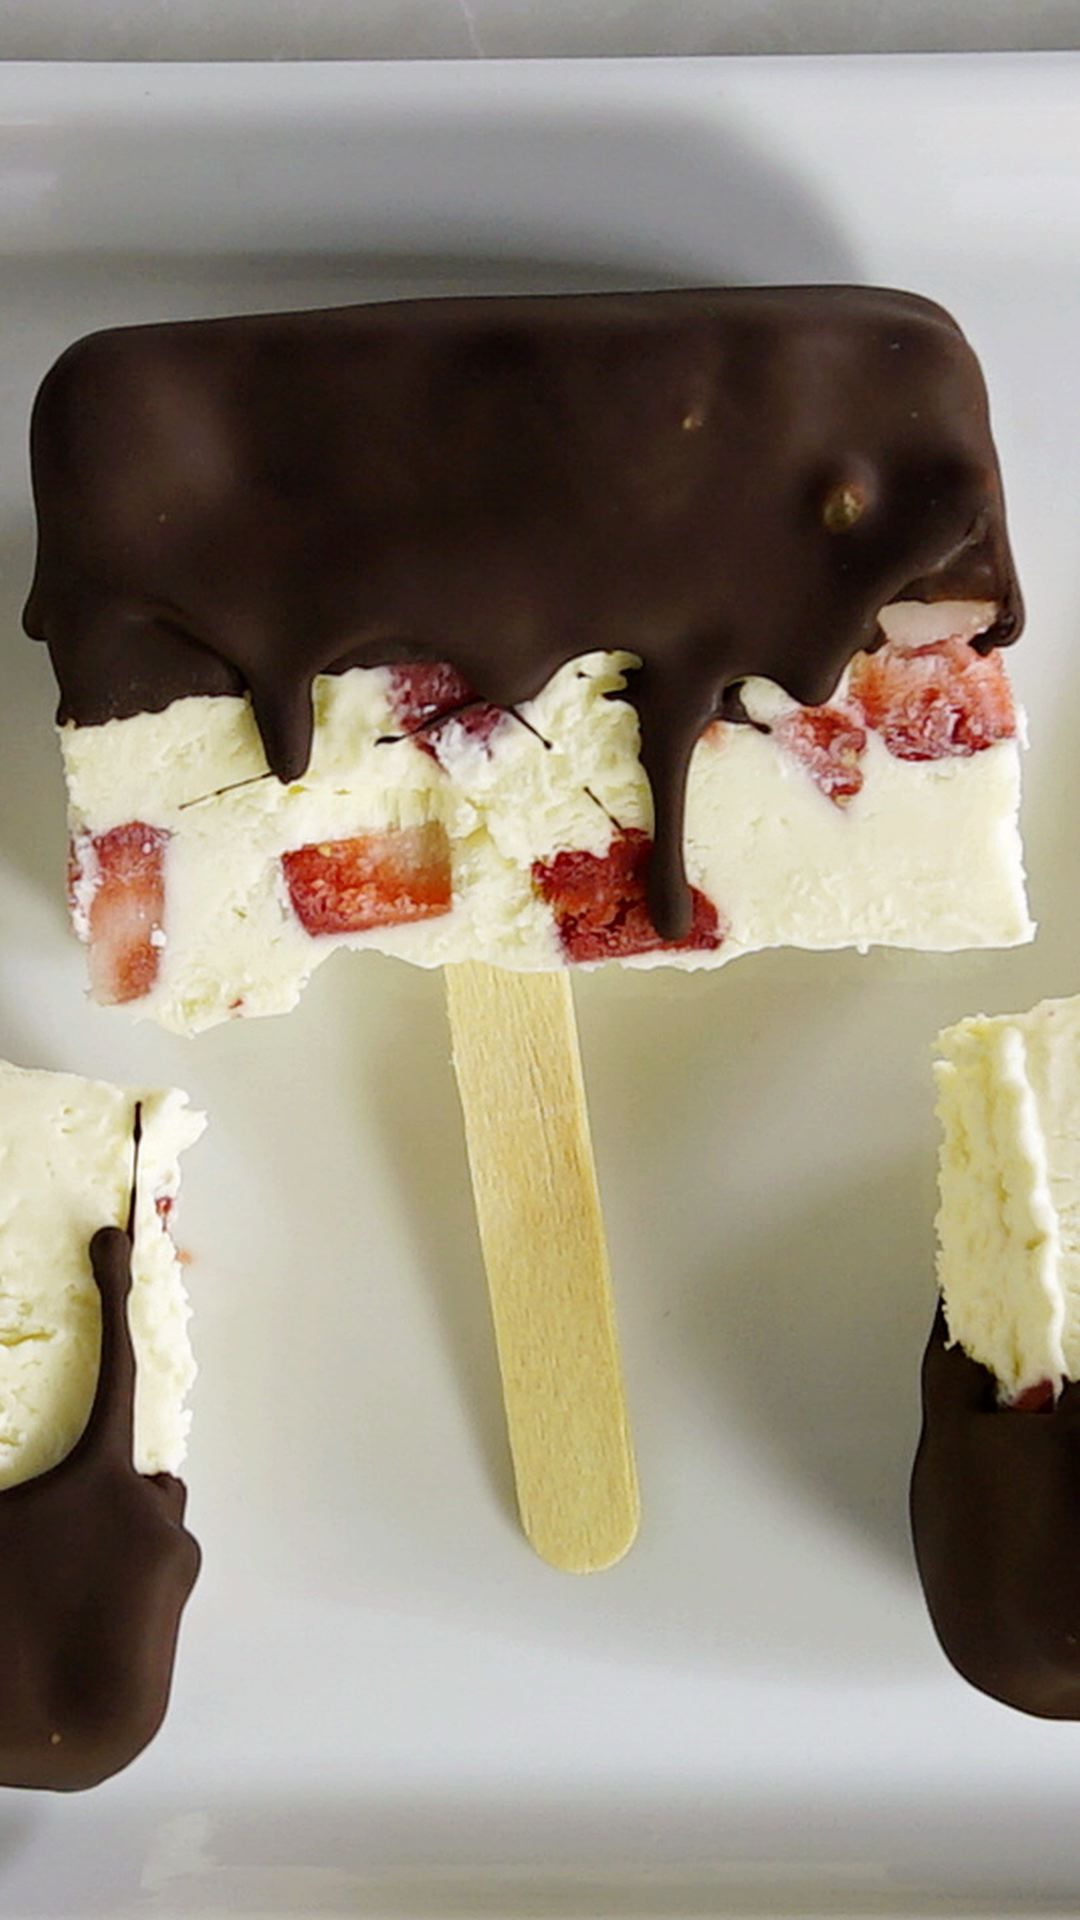 Strawberries and Cream Popsicles #diyfood